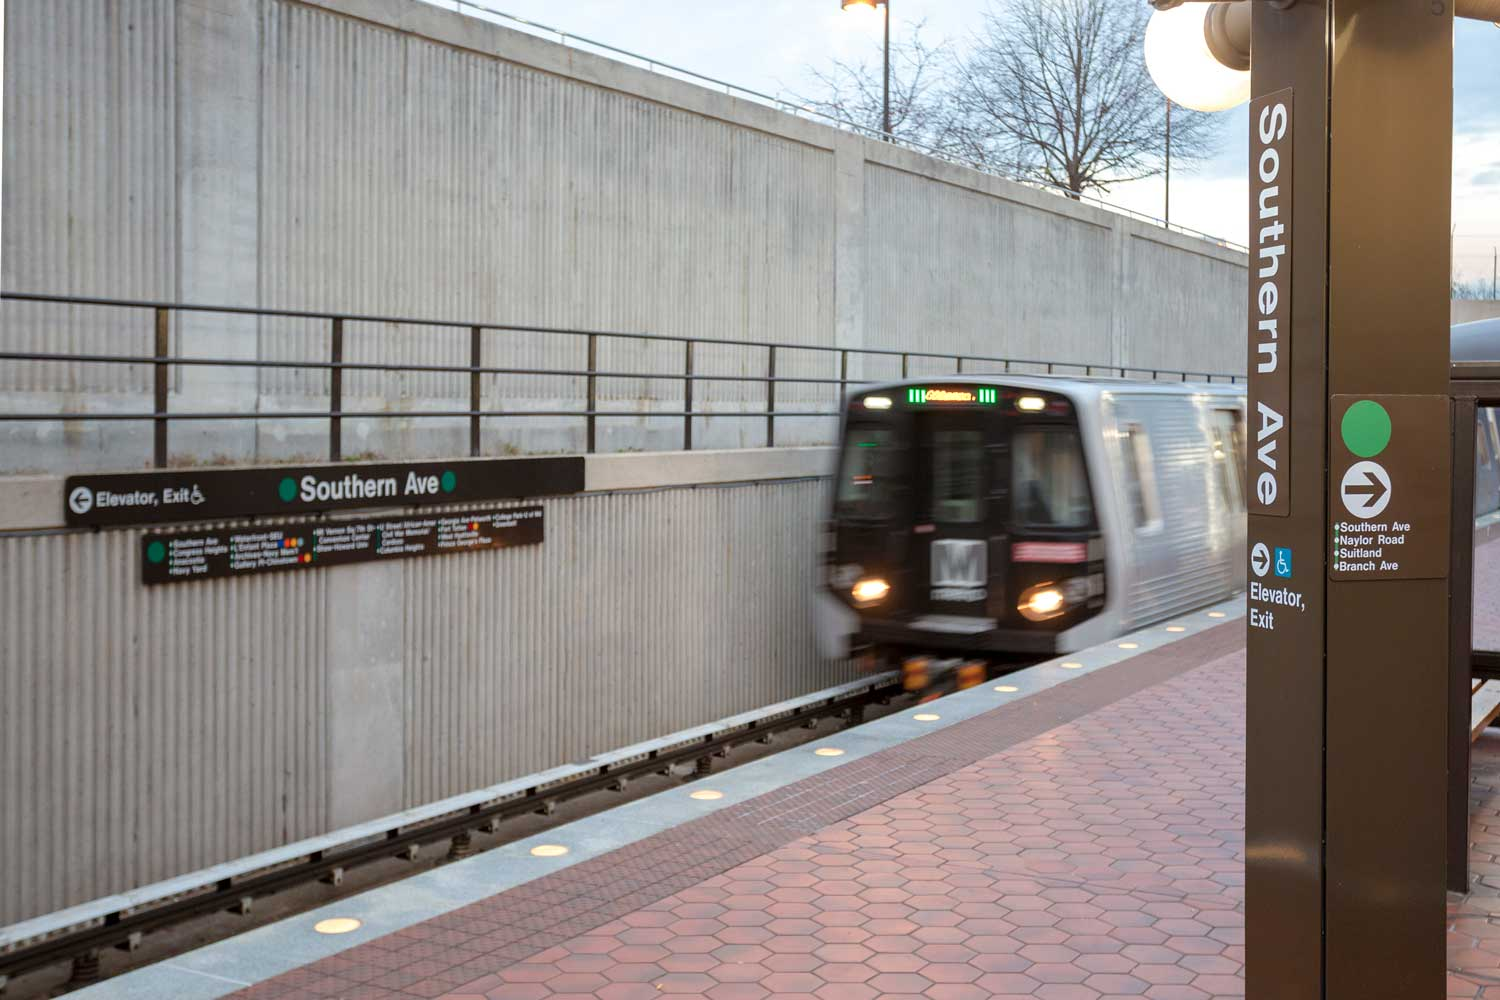 10 minutes to Green Line Southern Ave DC Metro station